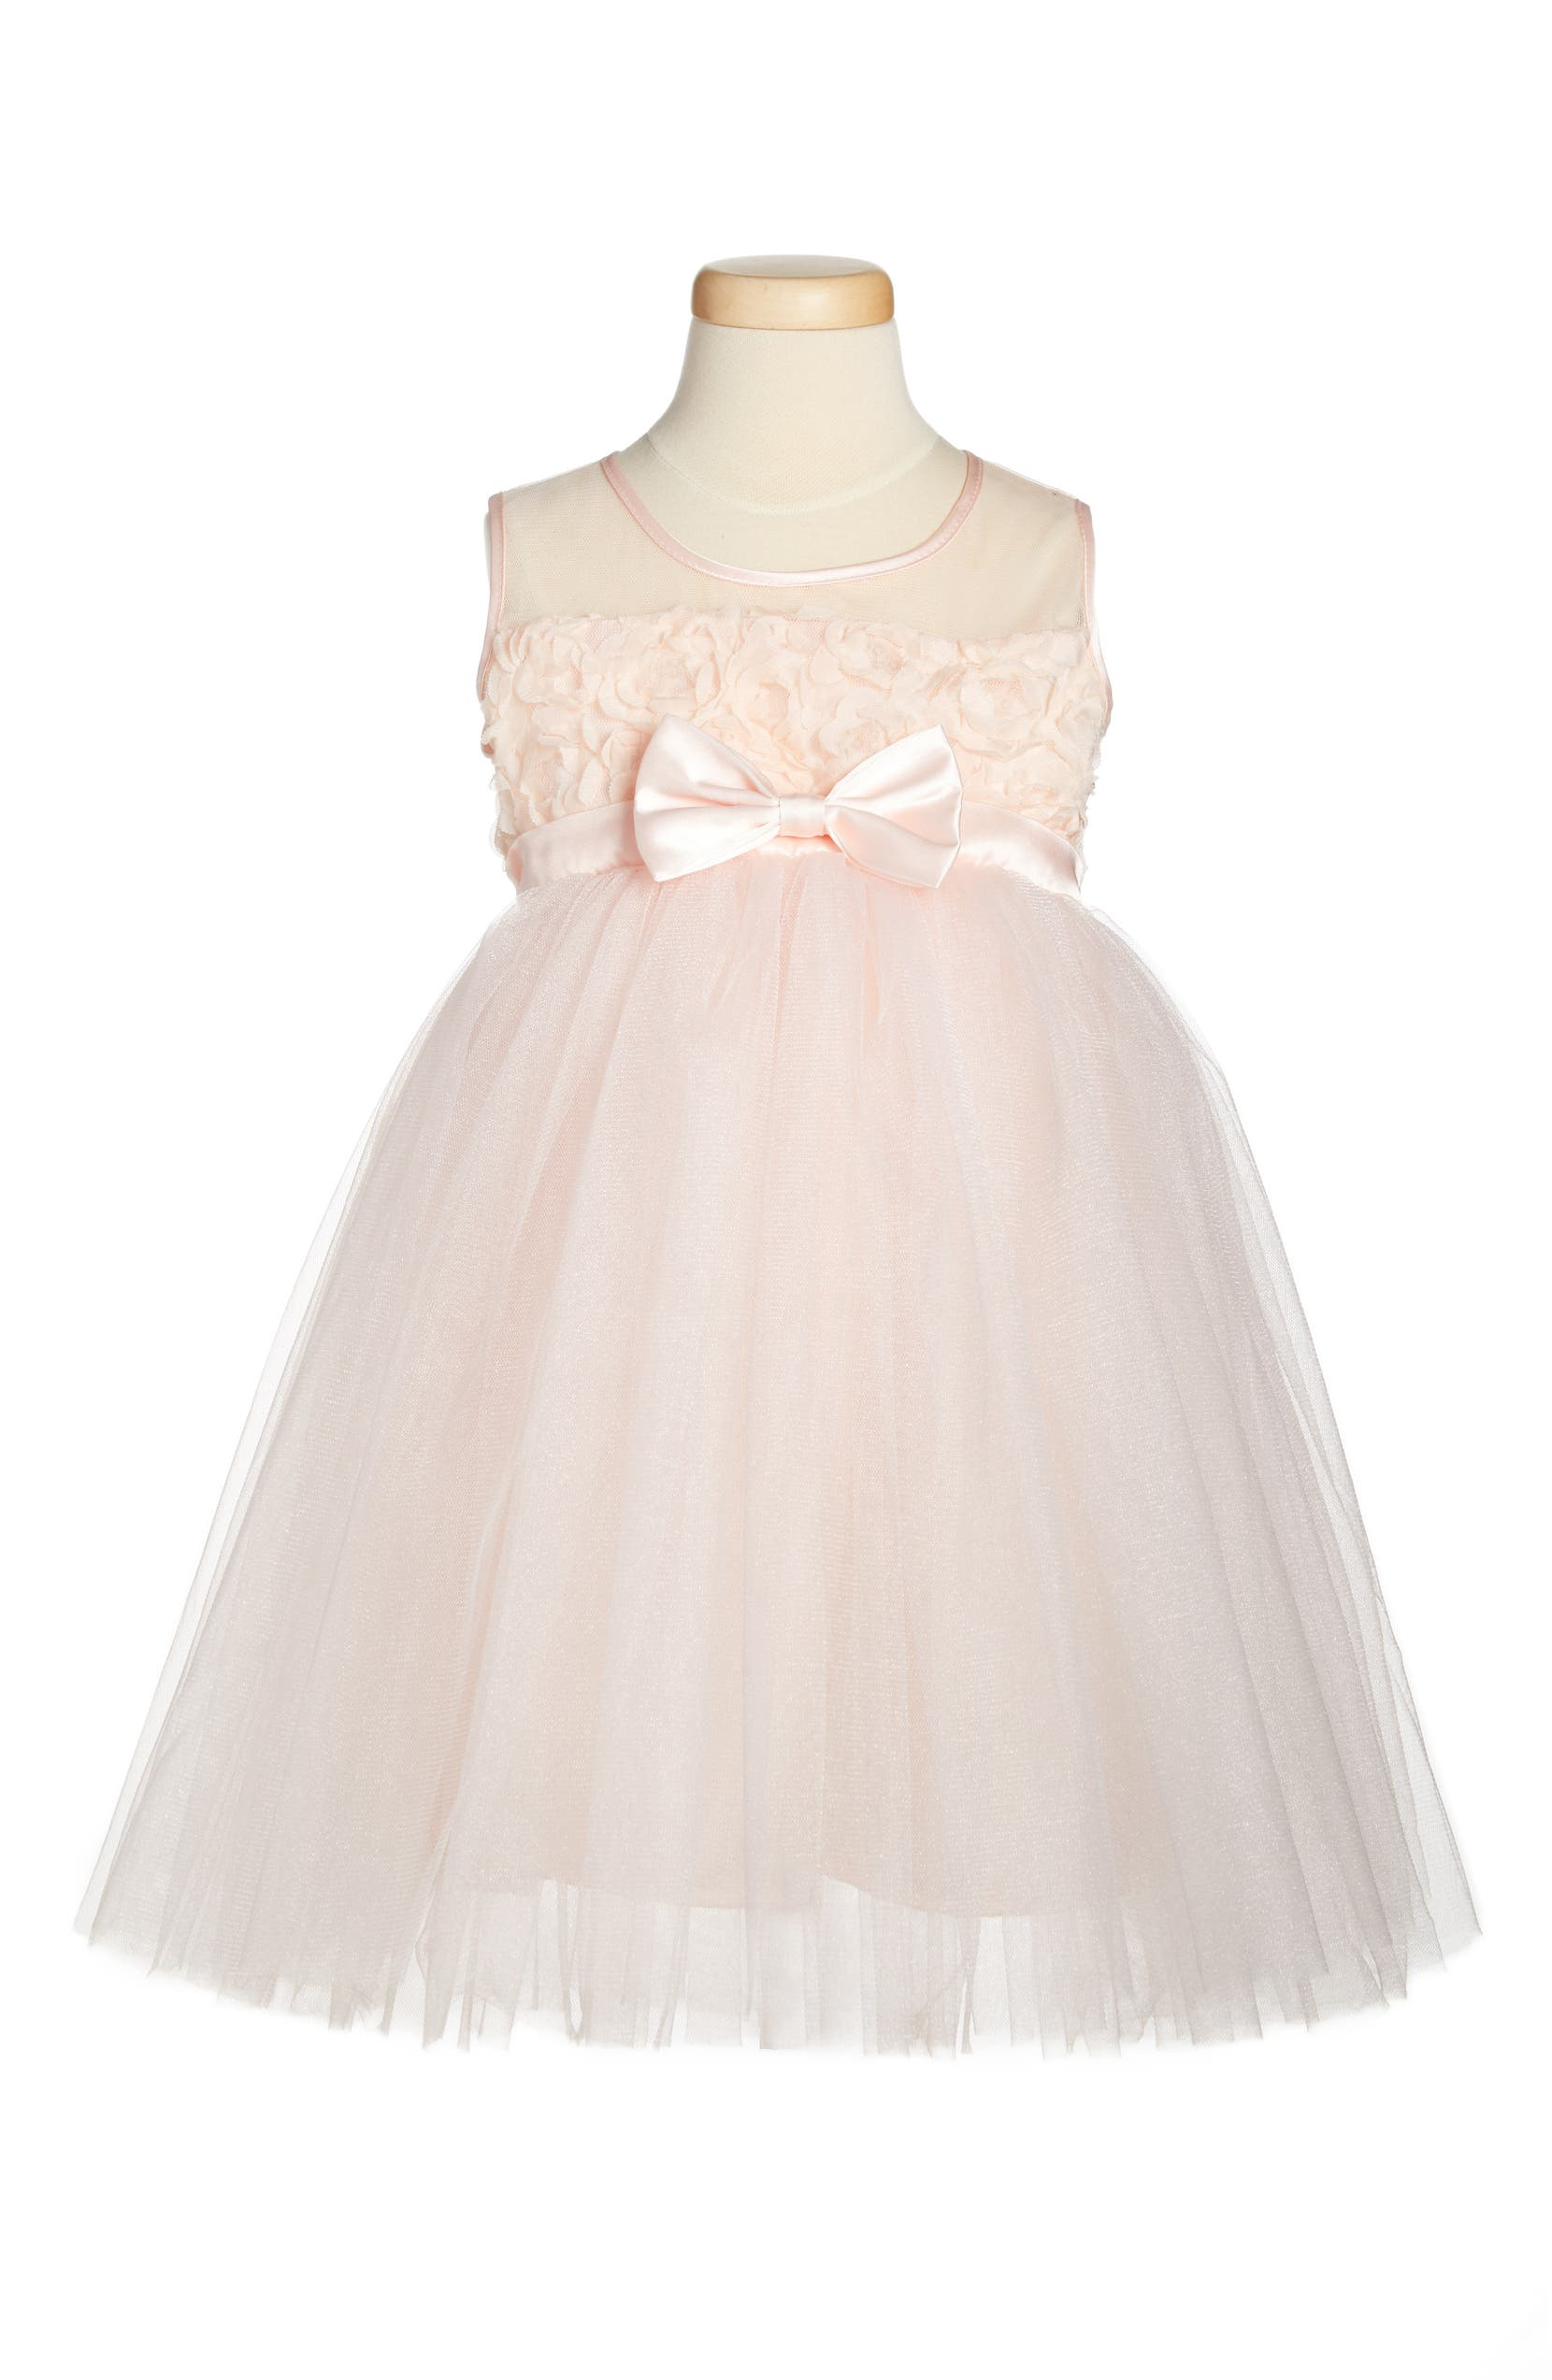 e2a3c9ad9 Popatu Floral Tulle Dress (Toddler Girls, Little Girls & Big Girls) |  Nordstrom